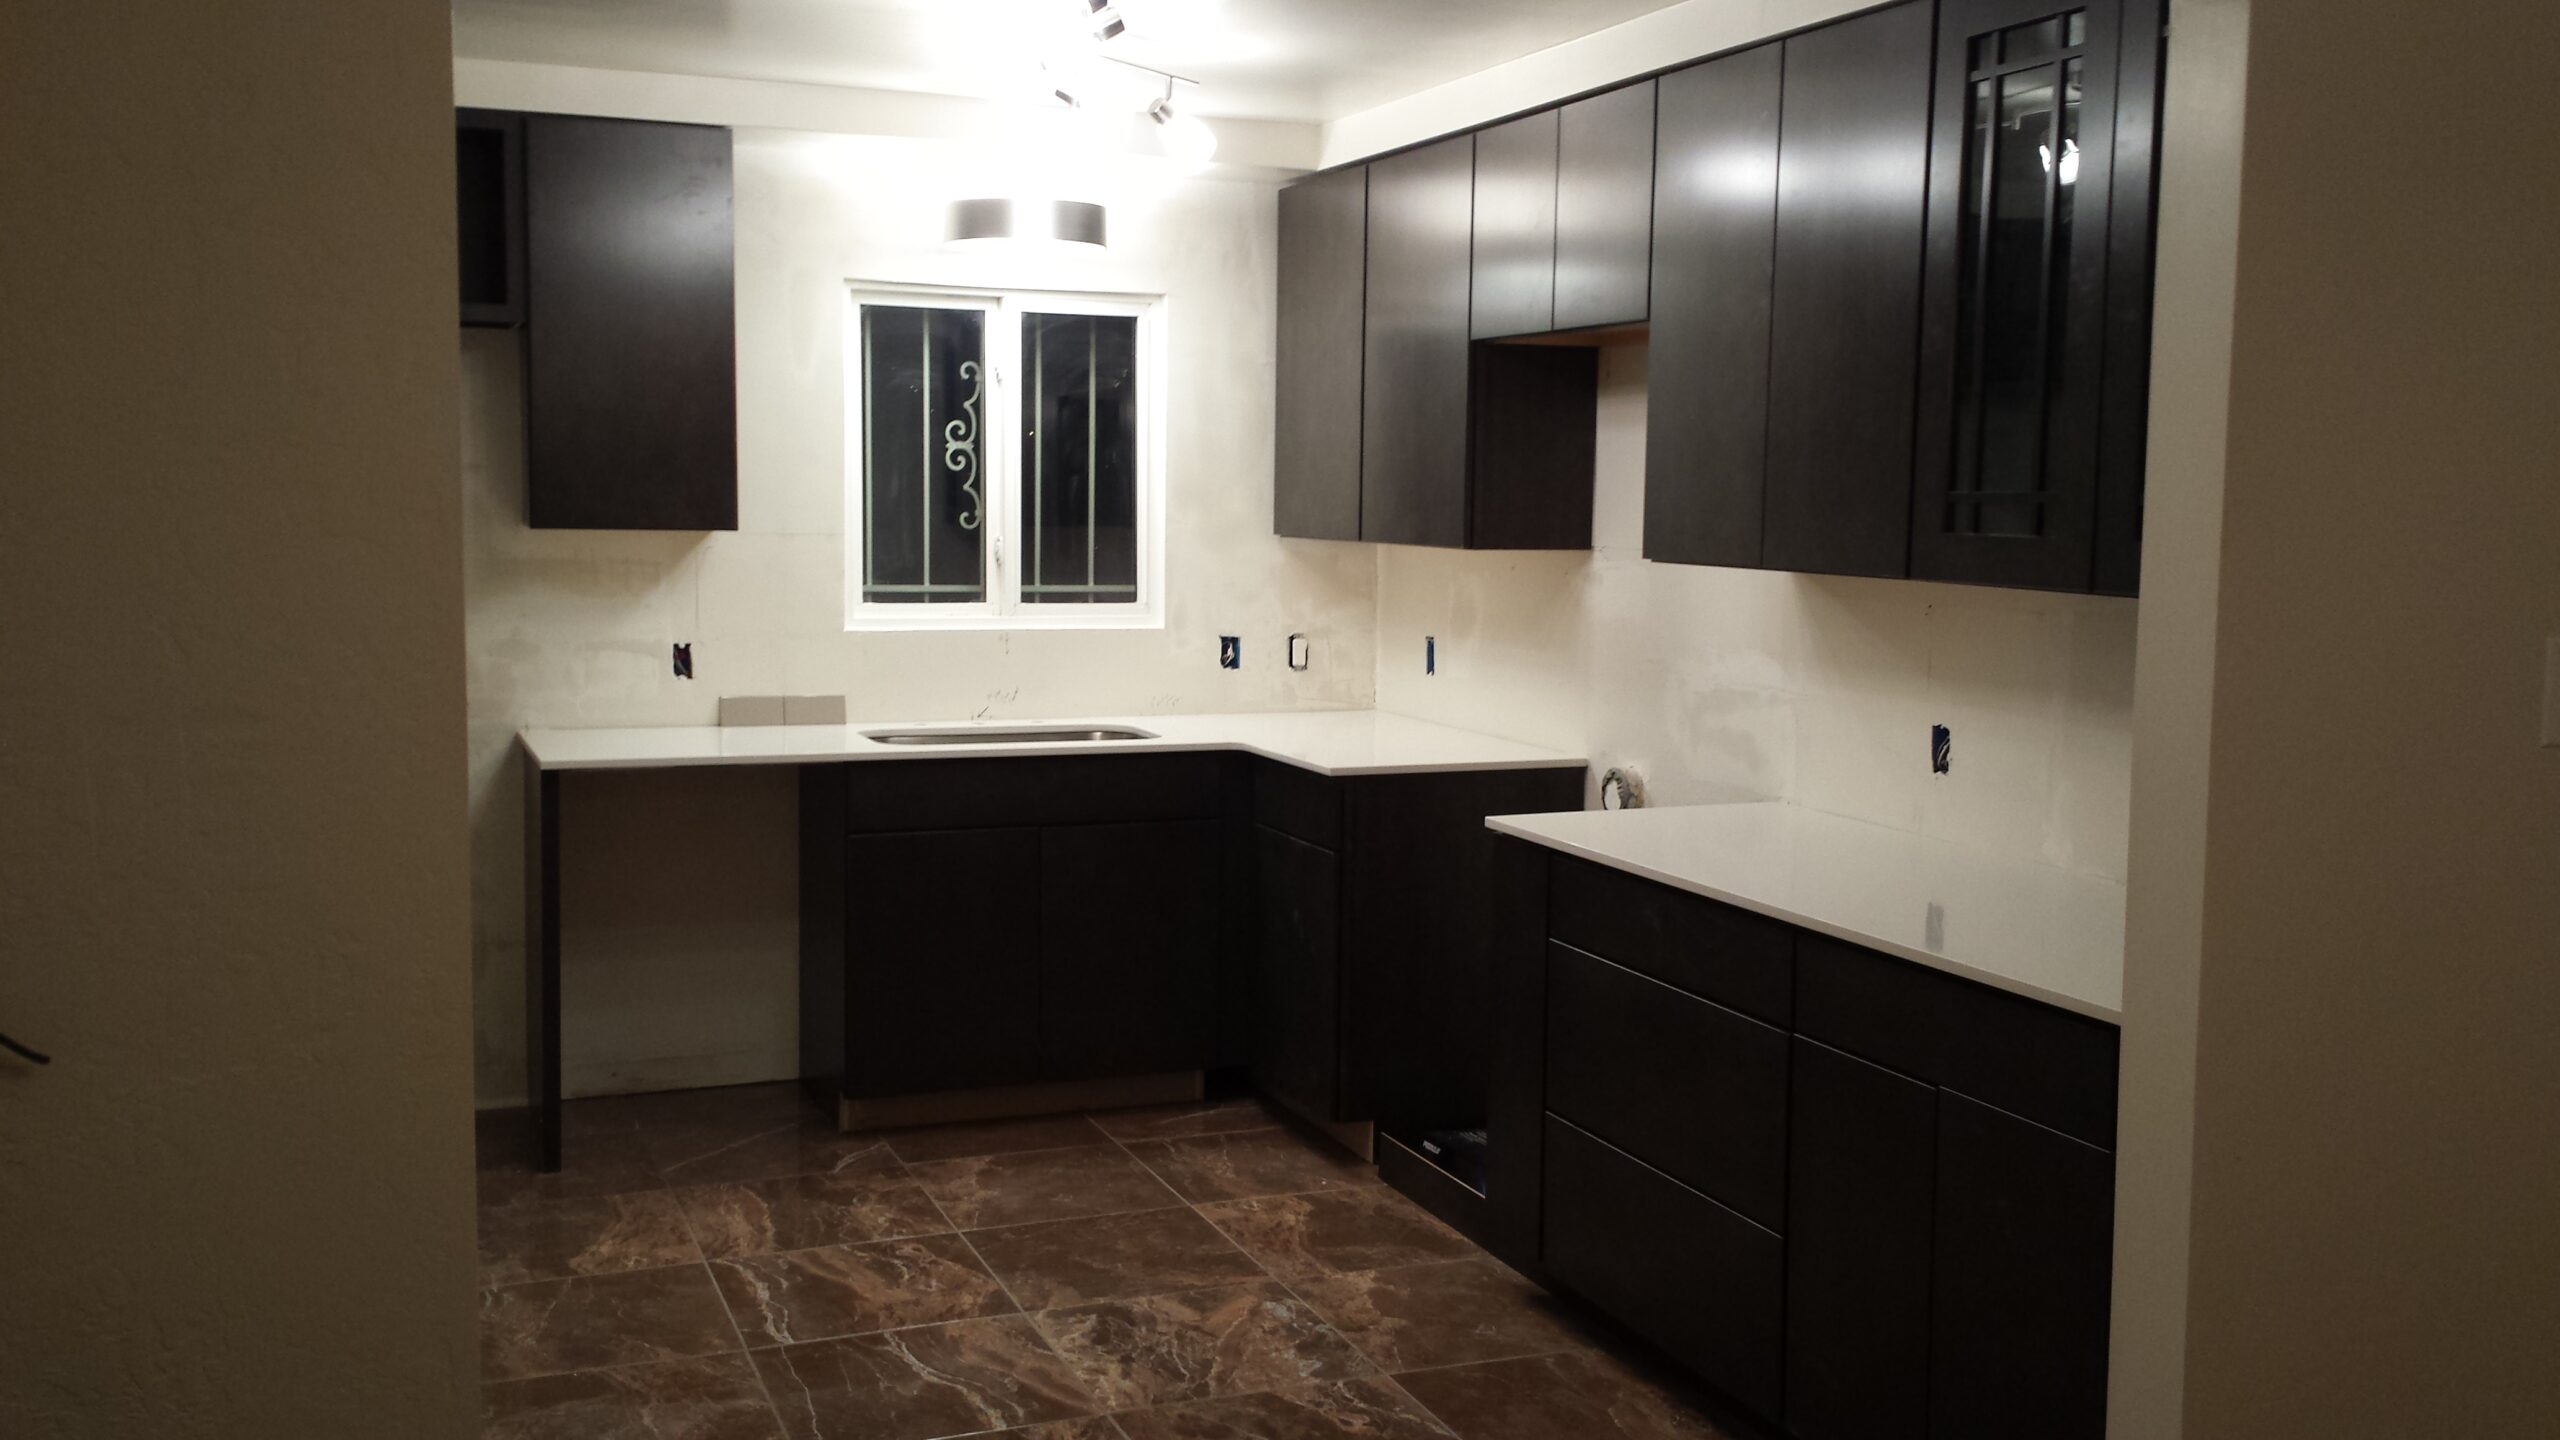 image showing Kitchen Remodel After